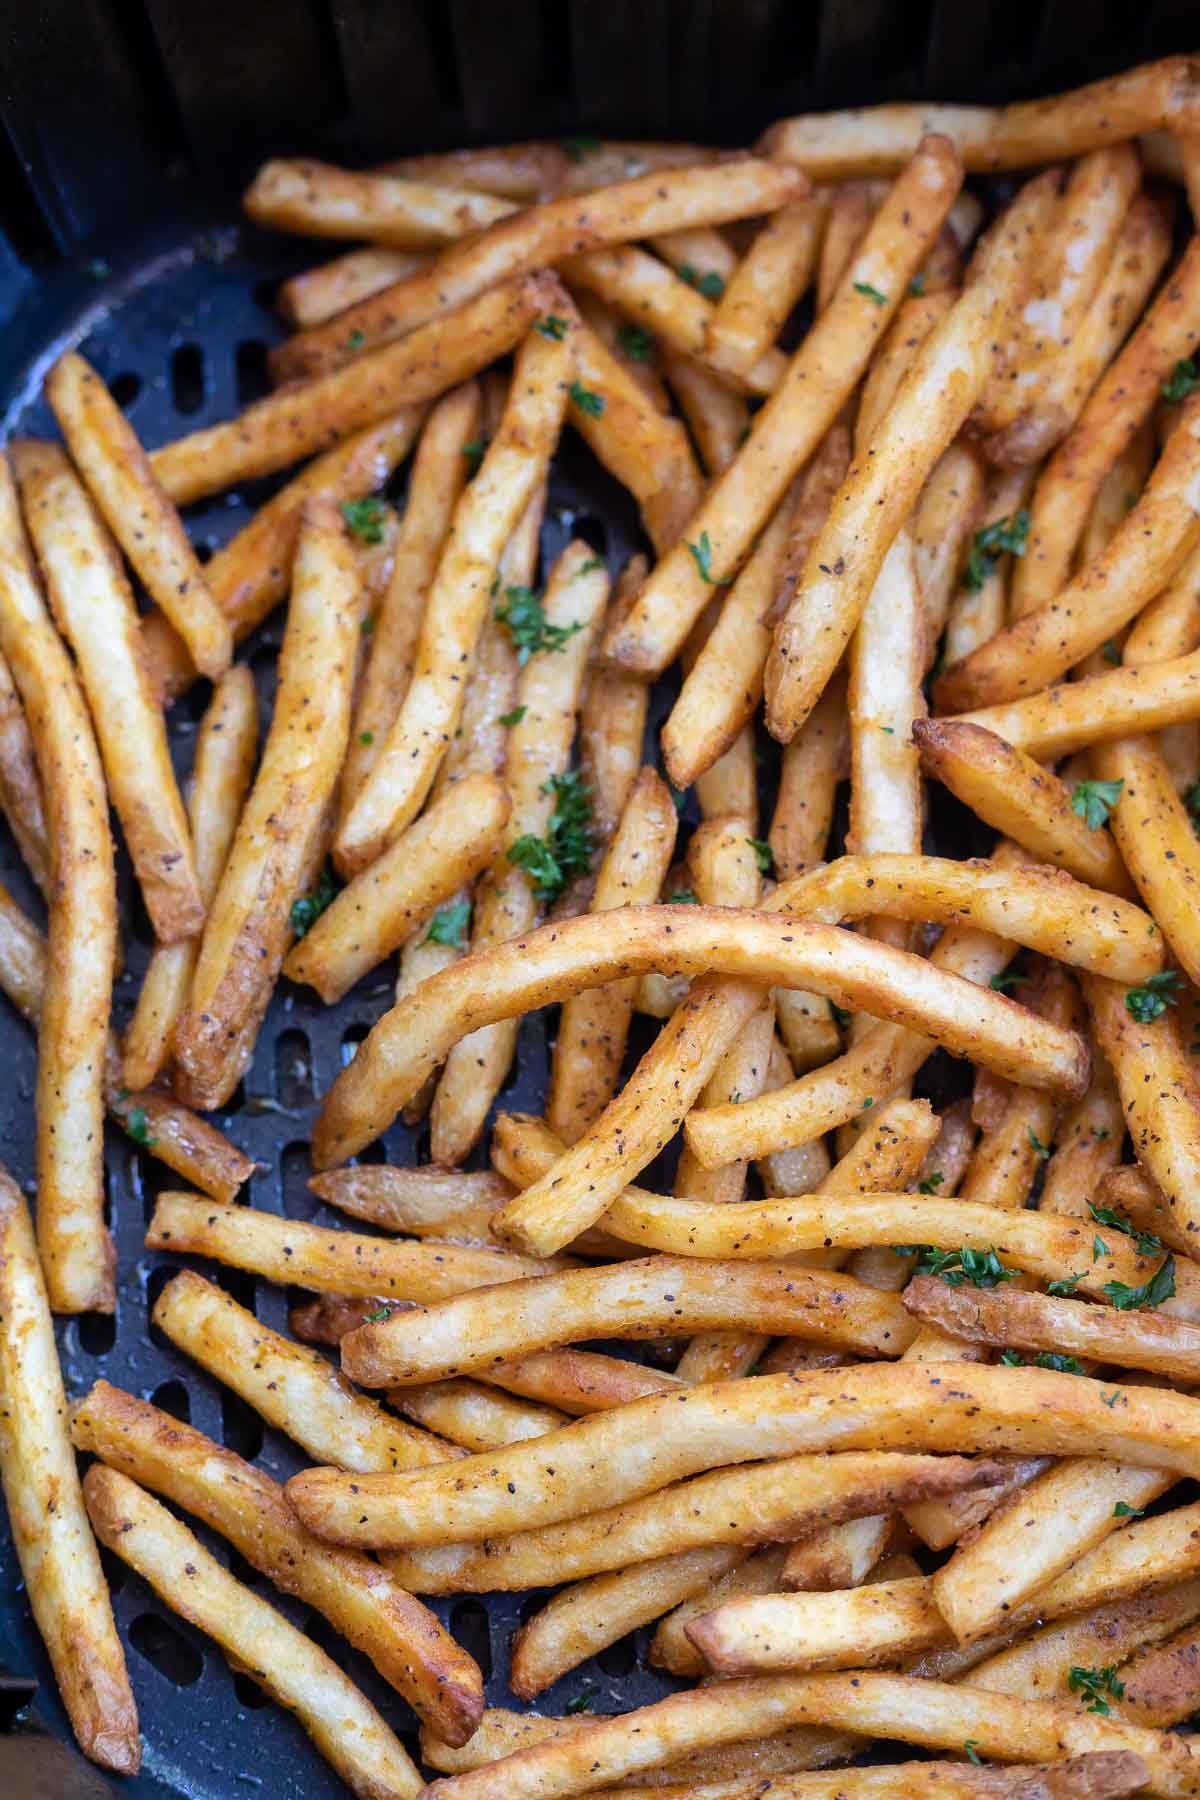 cooked French fries in air fryer basket